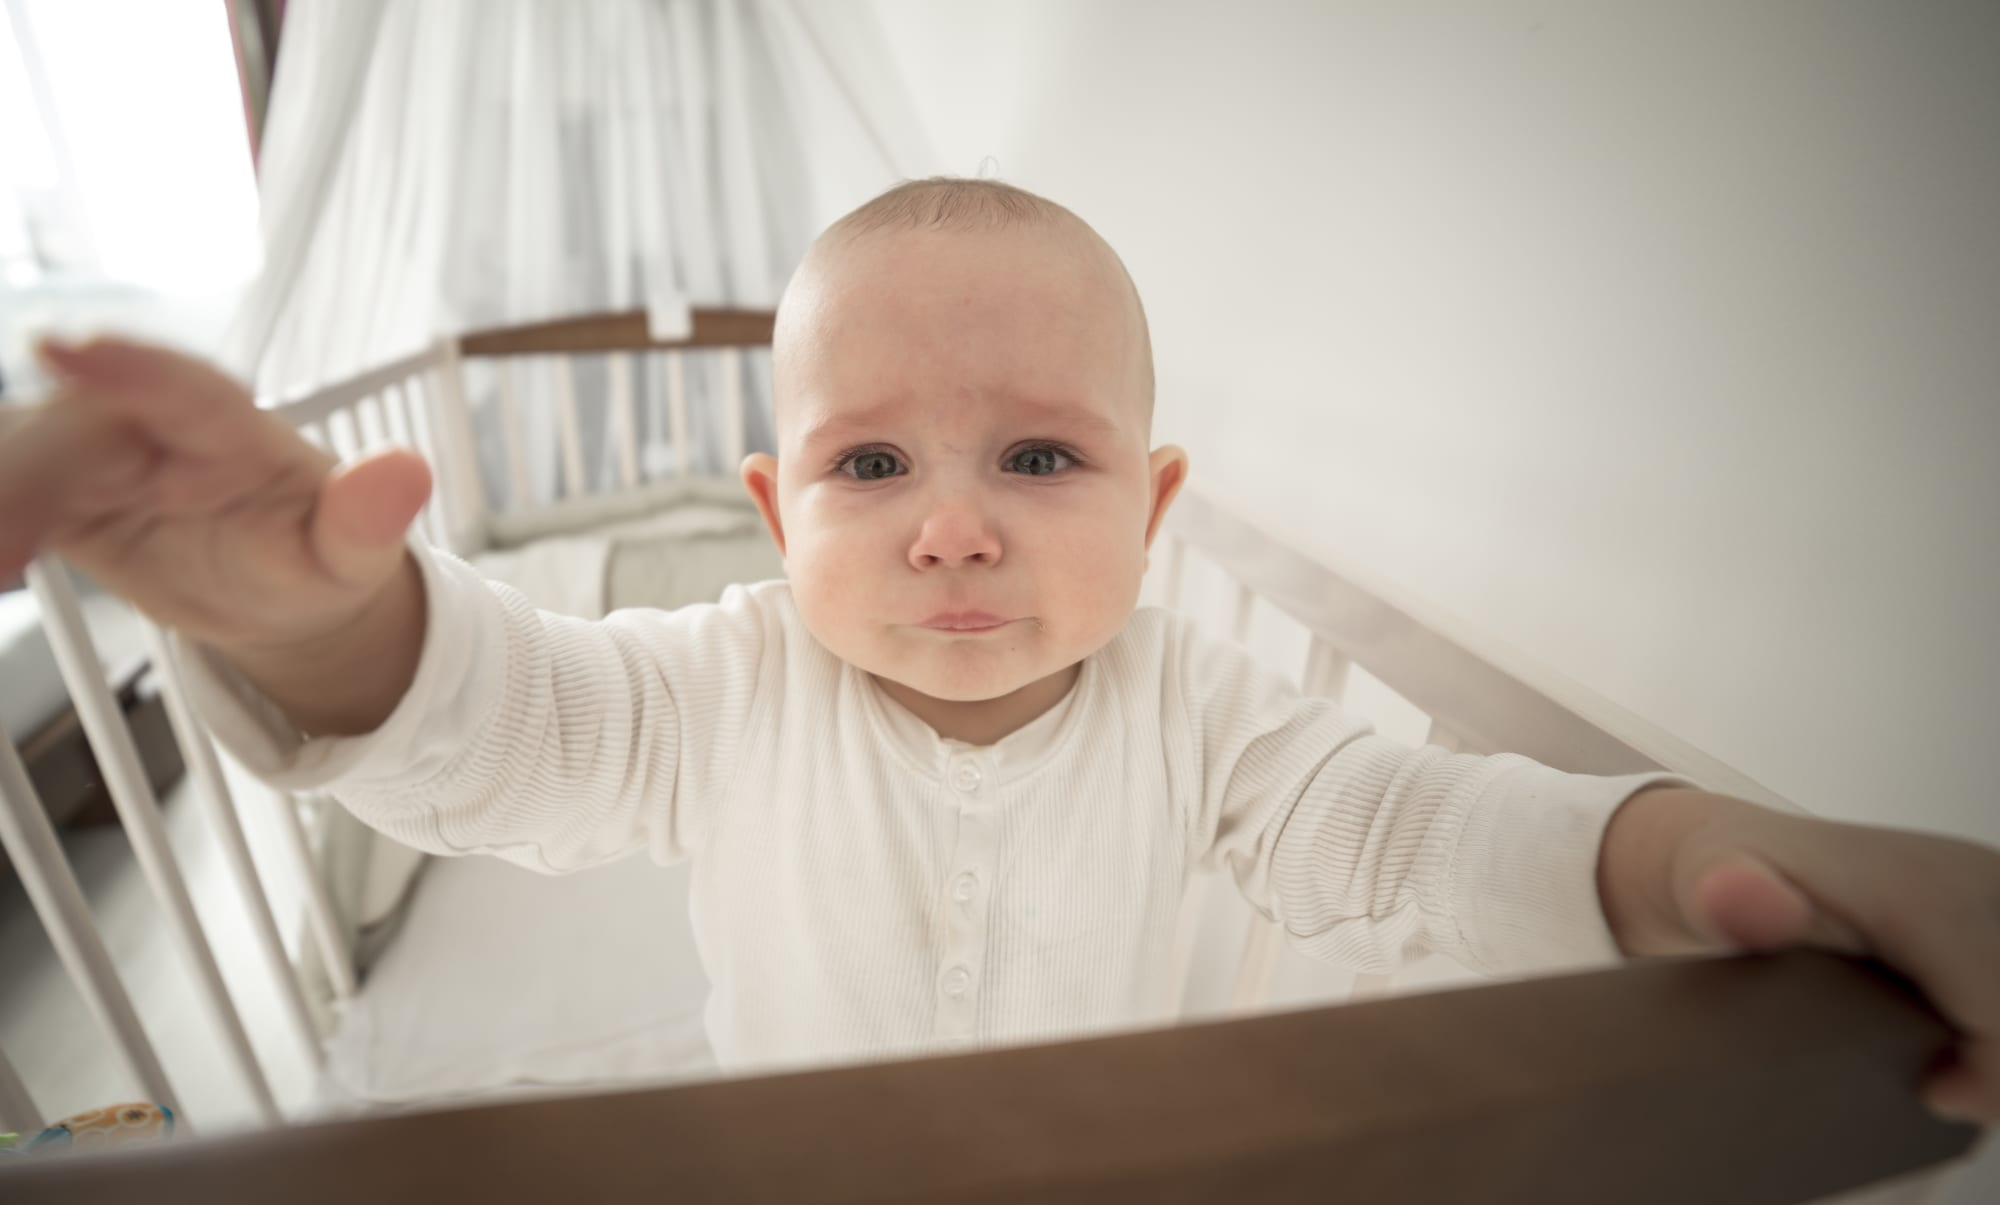 different cries a baby makes and what they mean #babycries #babylanguge #babycommunication